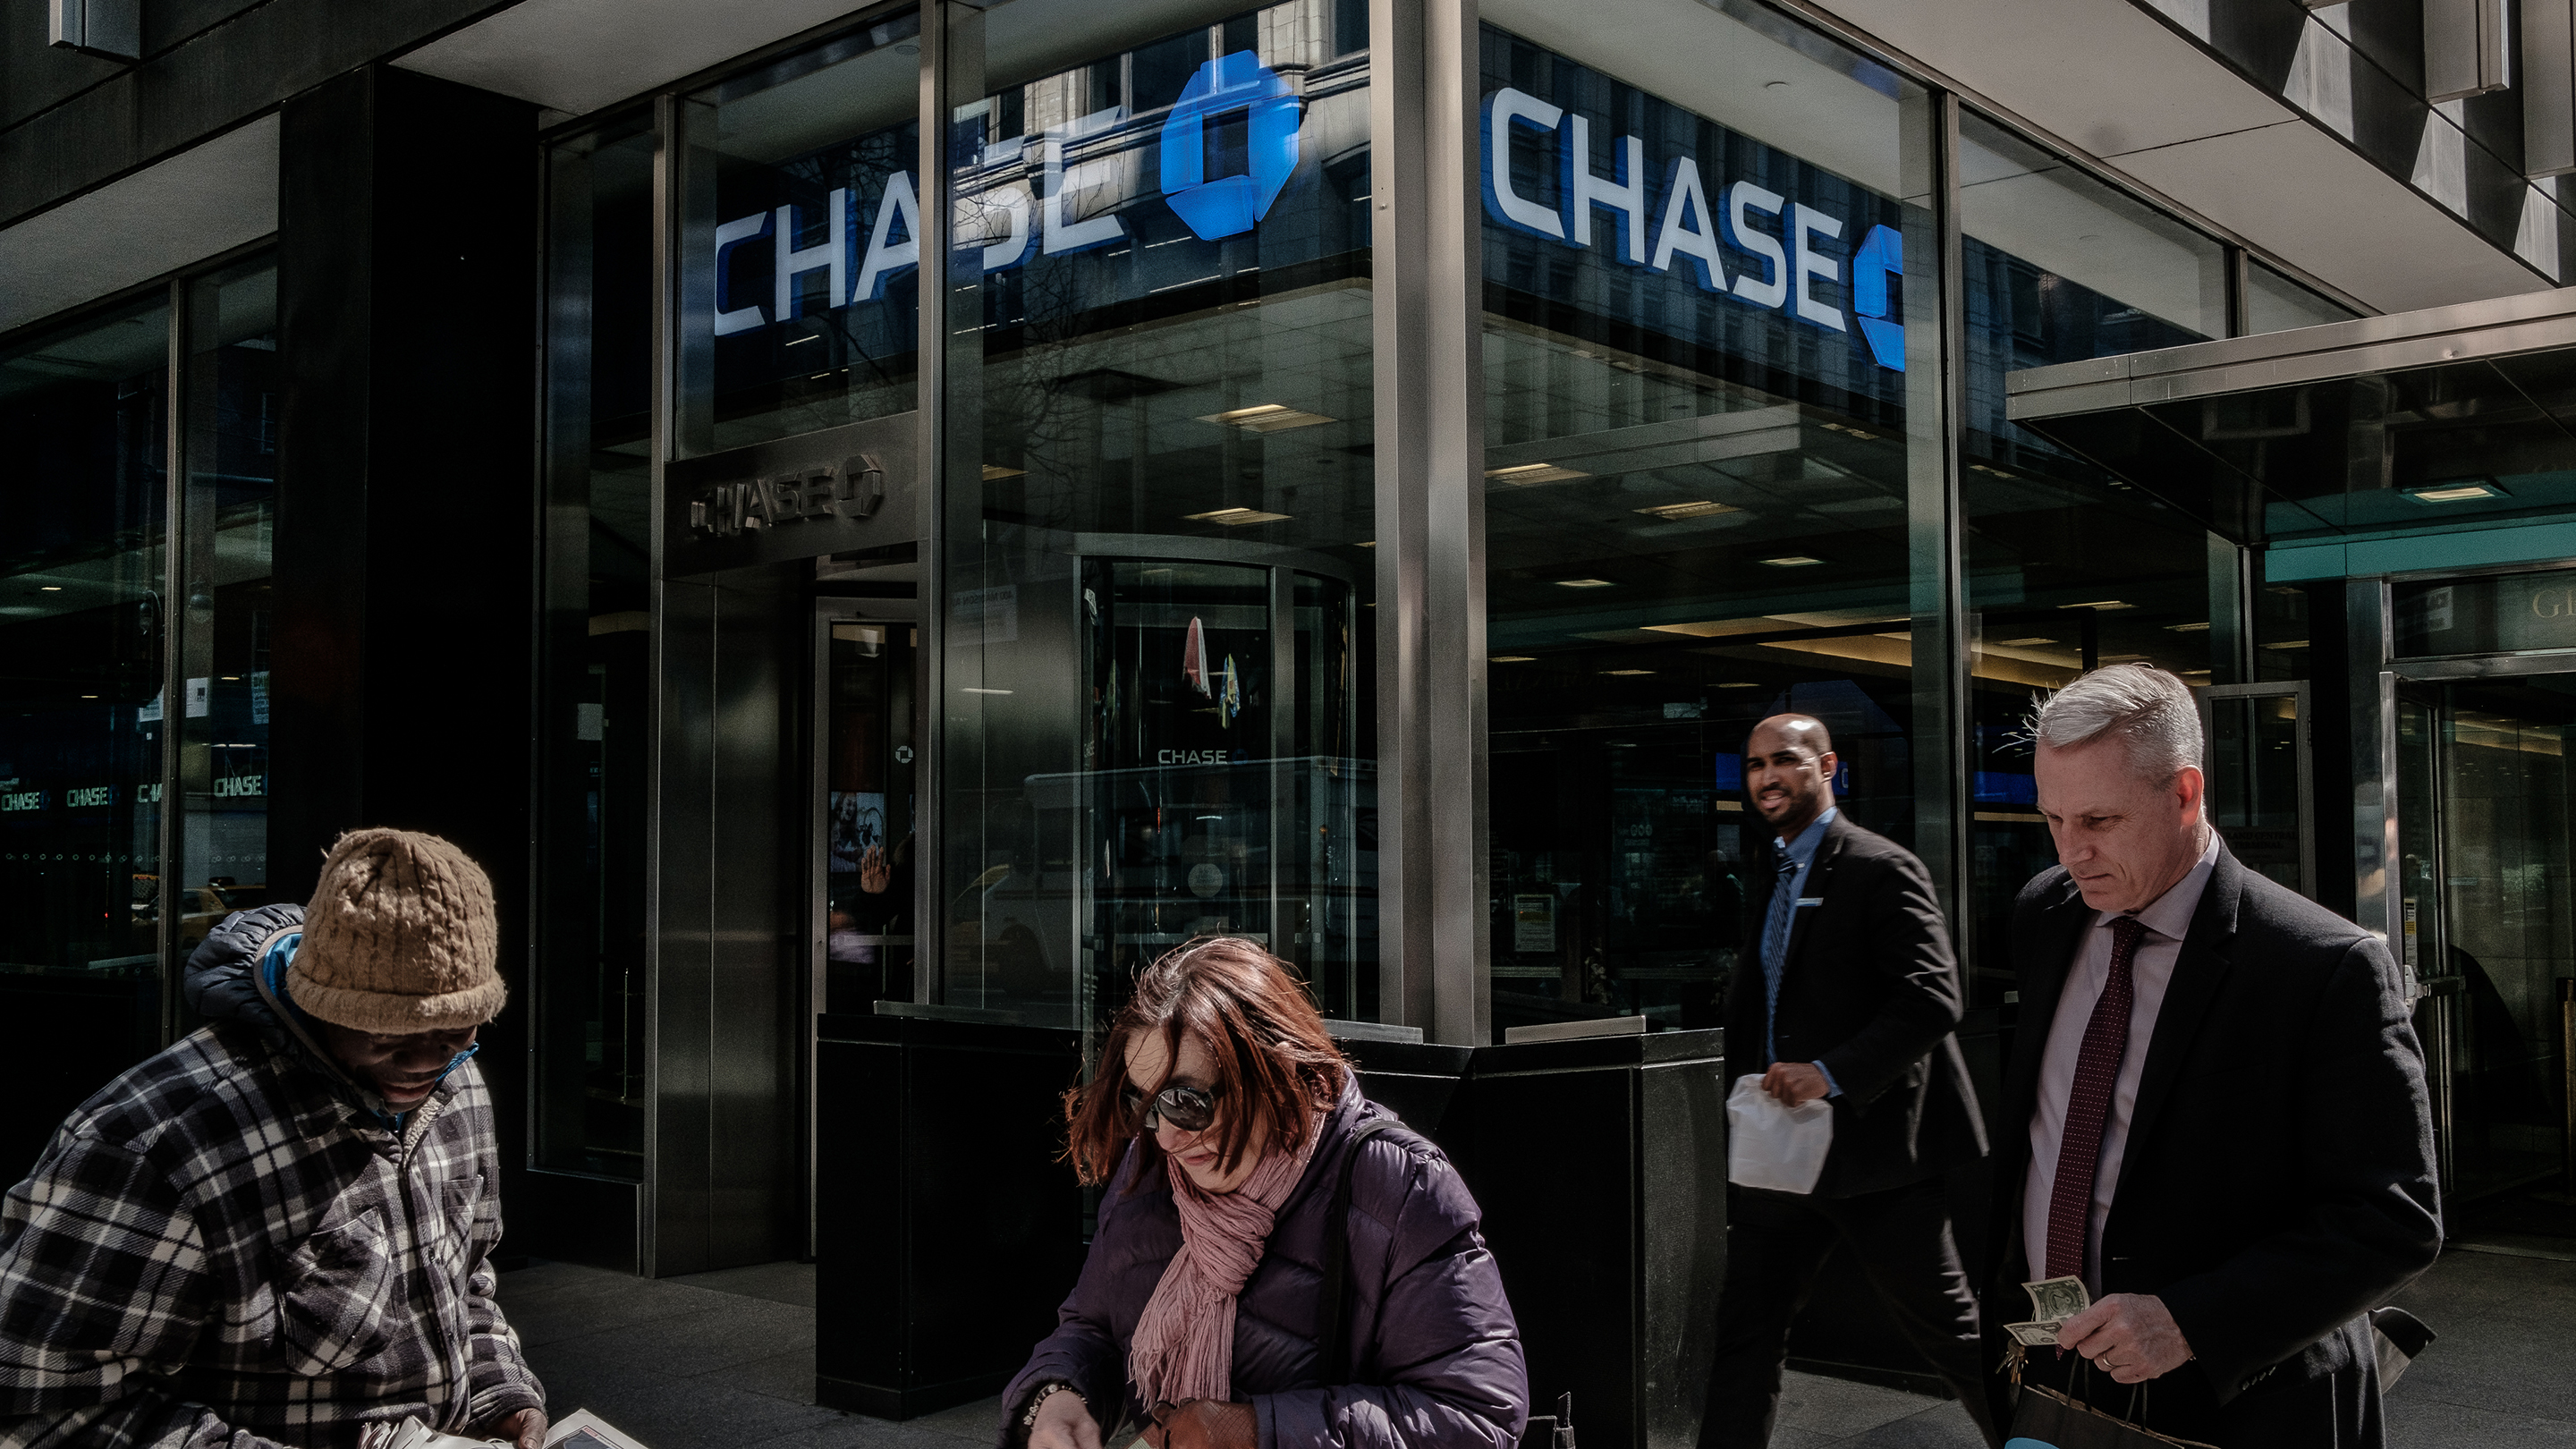 A JPMorgan Chase & Co. Bank Branch Ahead Of Earnings Figures